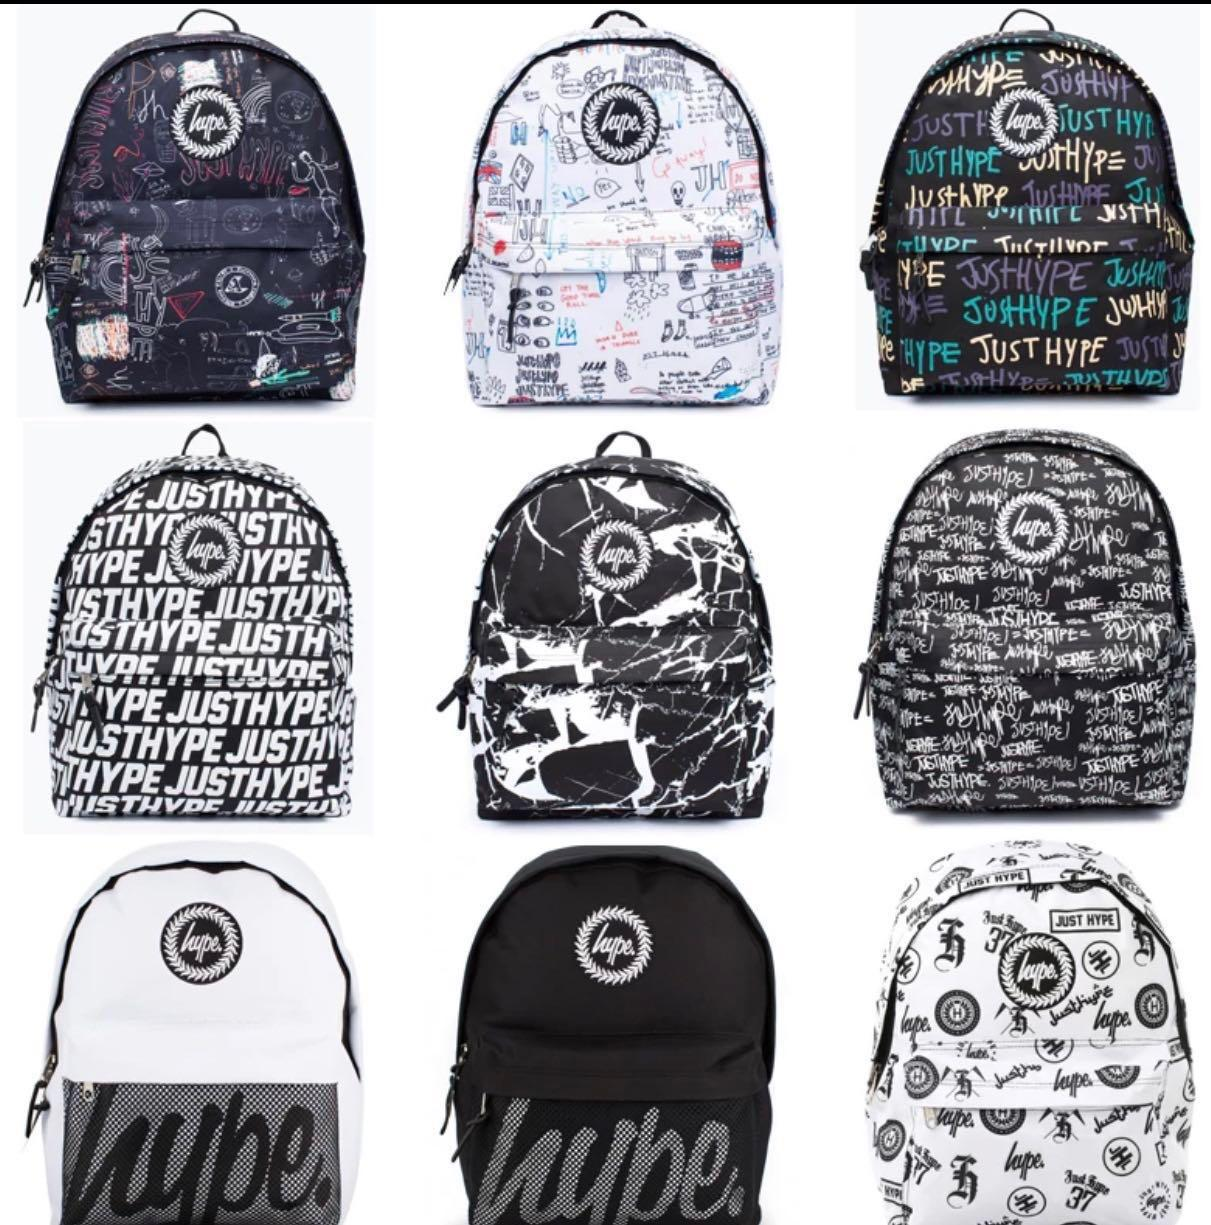 100 % authentic hype Backpack (Pre order)